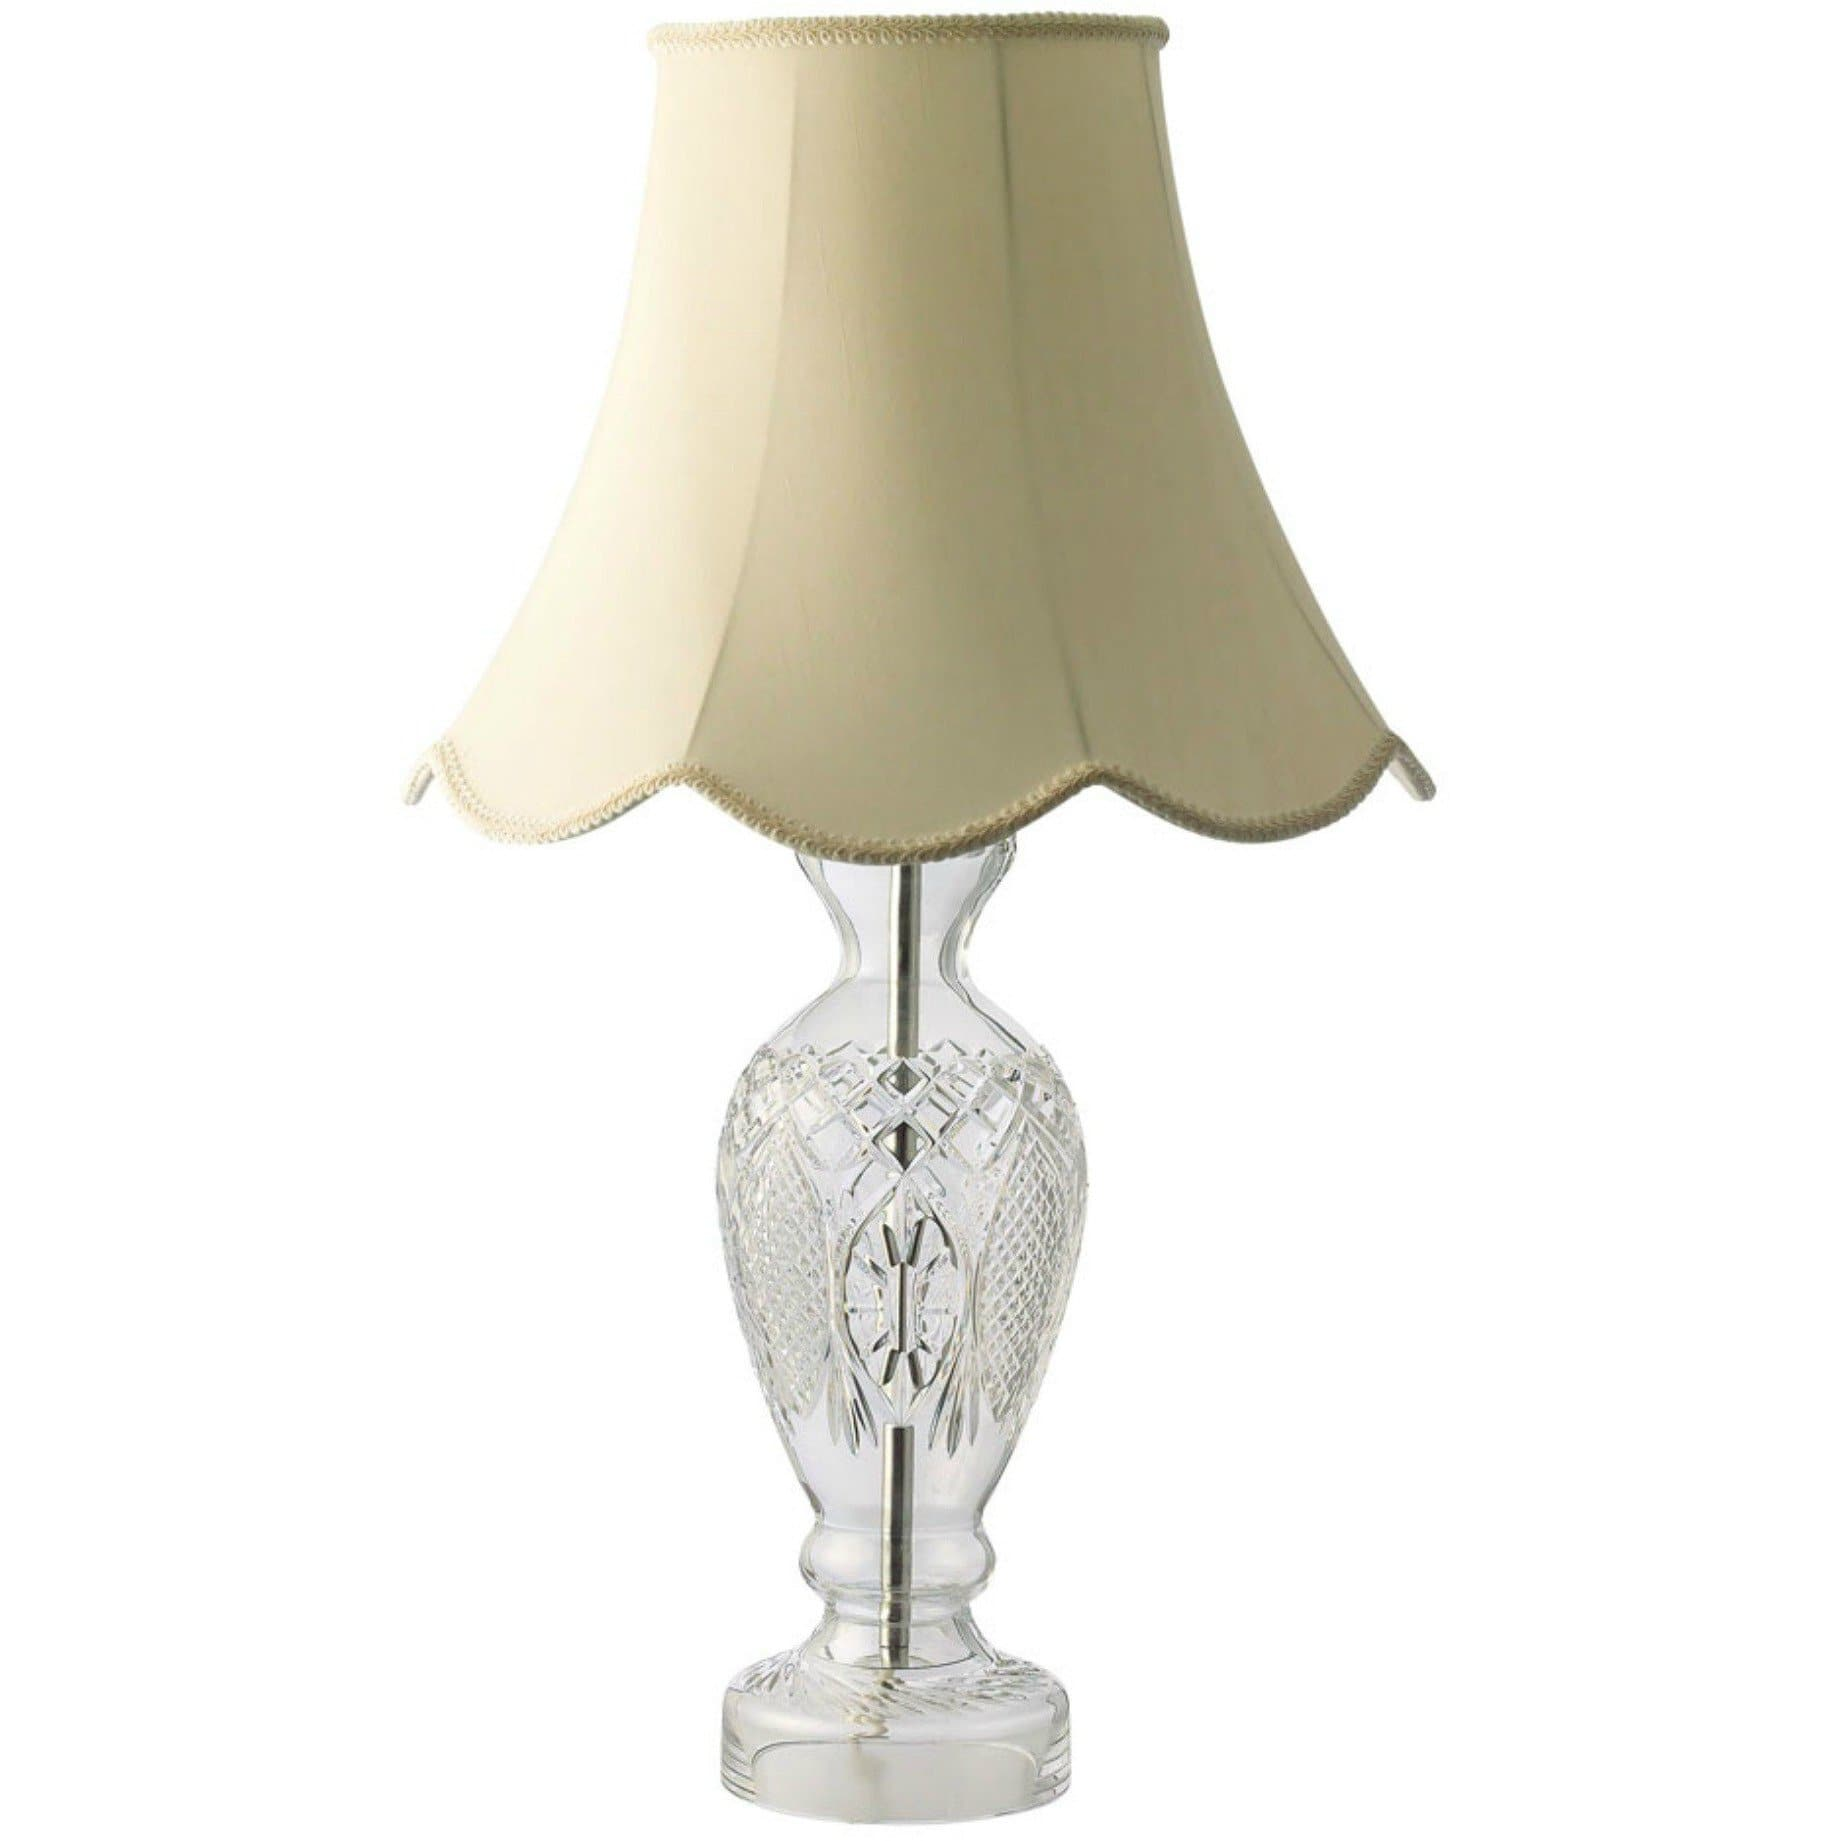 "Corrib 15"" Lamp & Shade (IRL/UK Fittings) (GL864)"